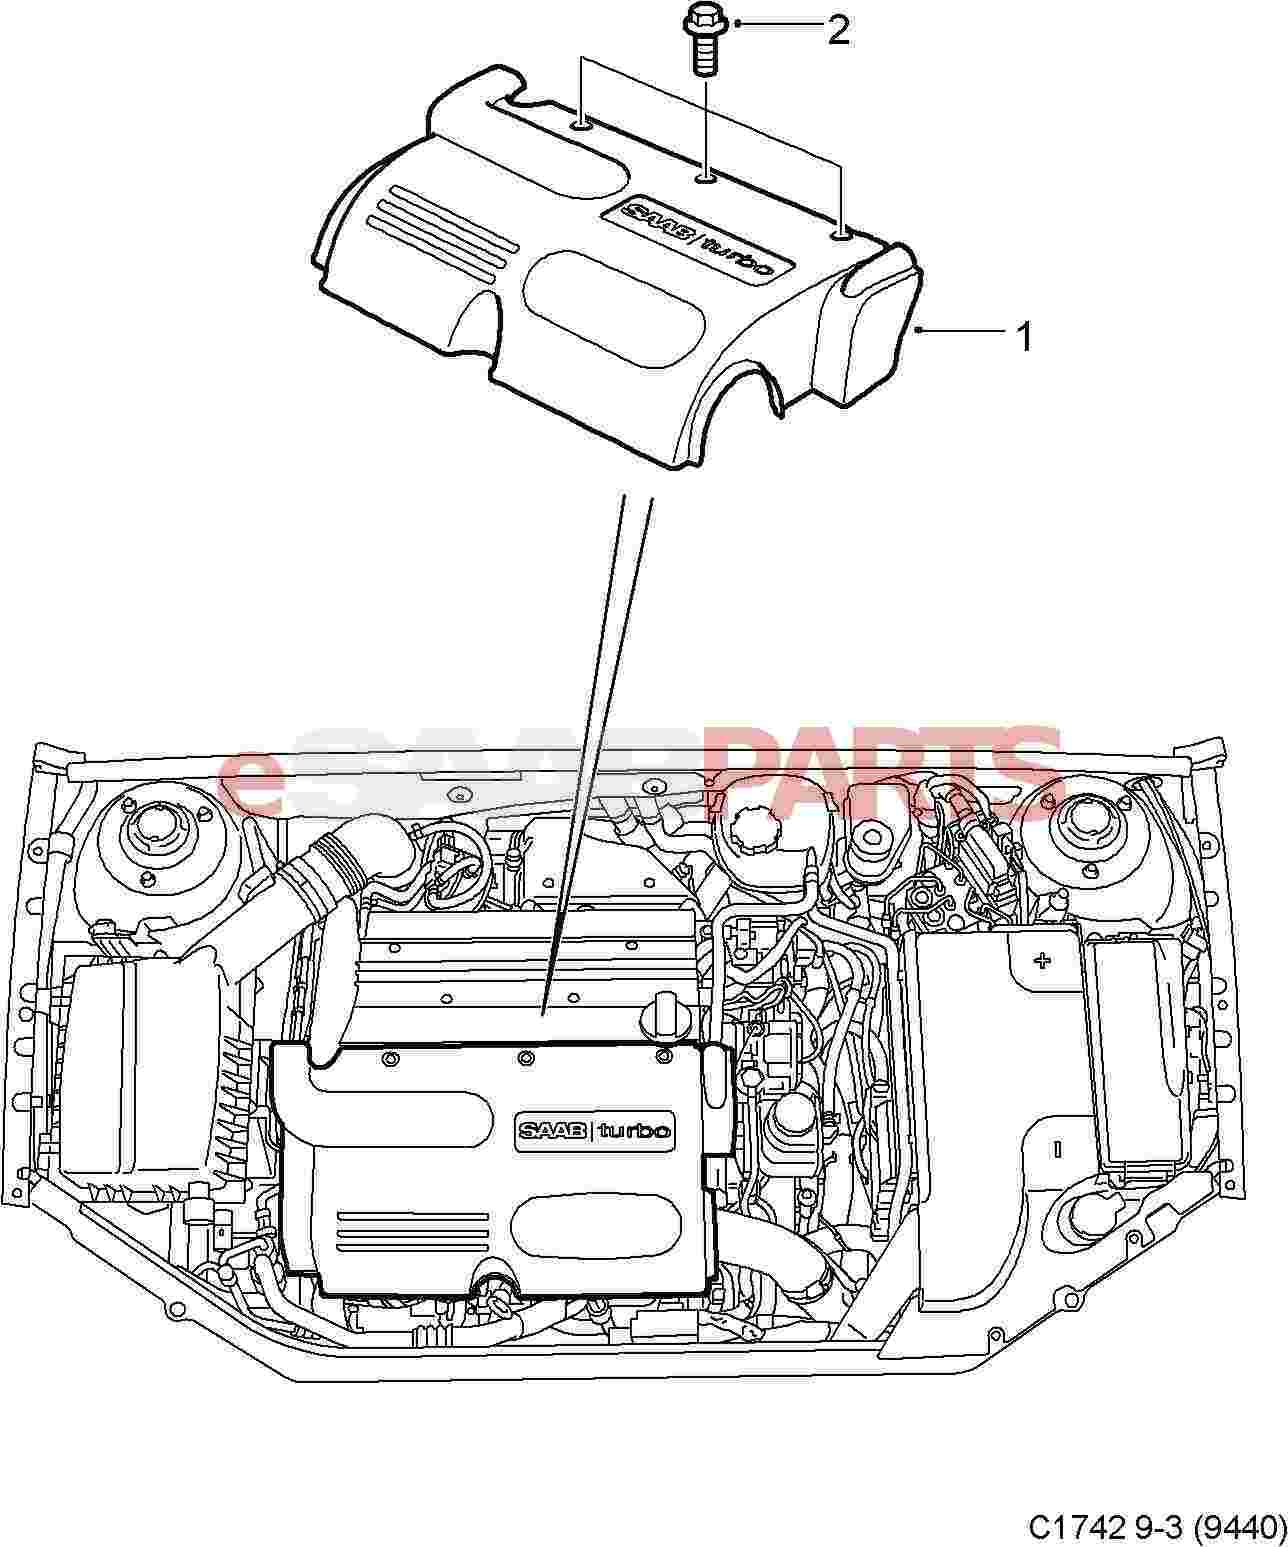 Mazda Cx 7 Engine Problems. Mazda. Wiring Diagram Gallery